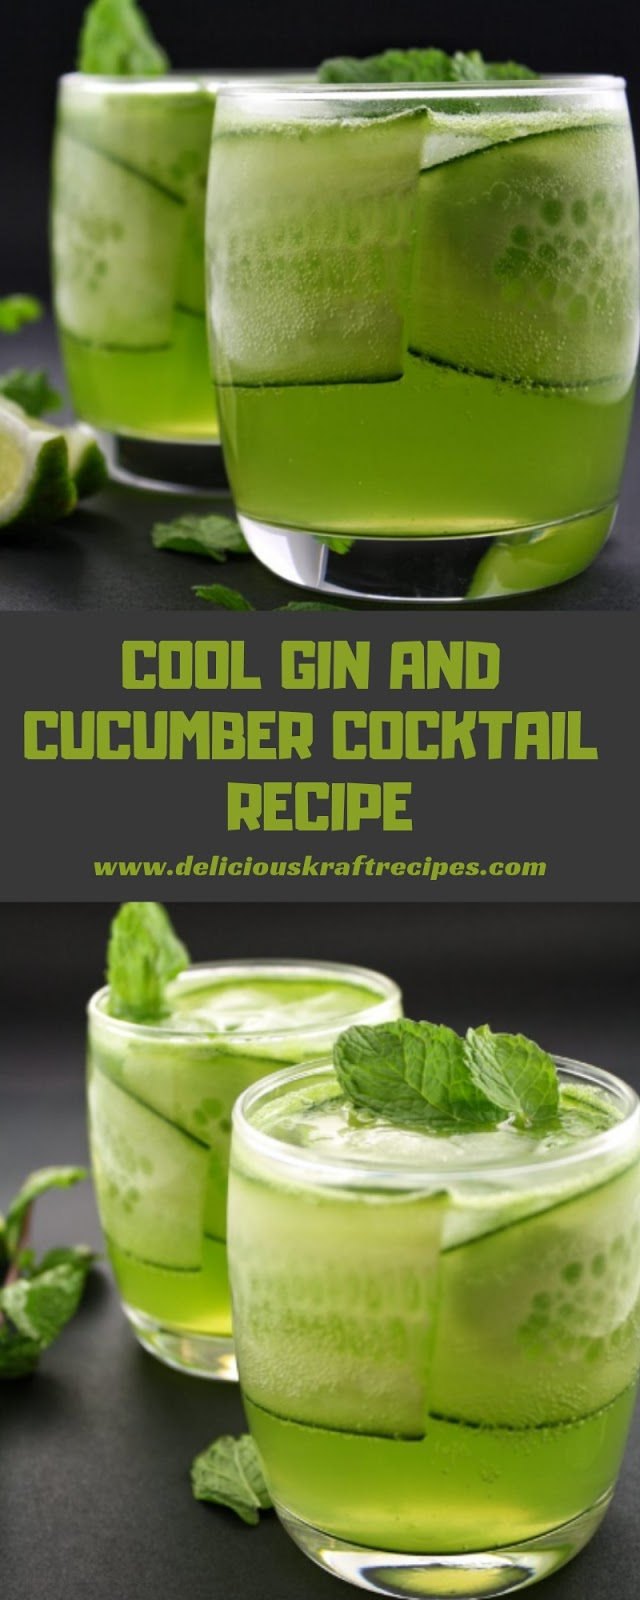 COOL GIN AND CUCUMBER COCKTAIL RECIPE